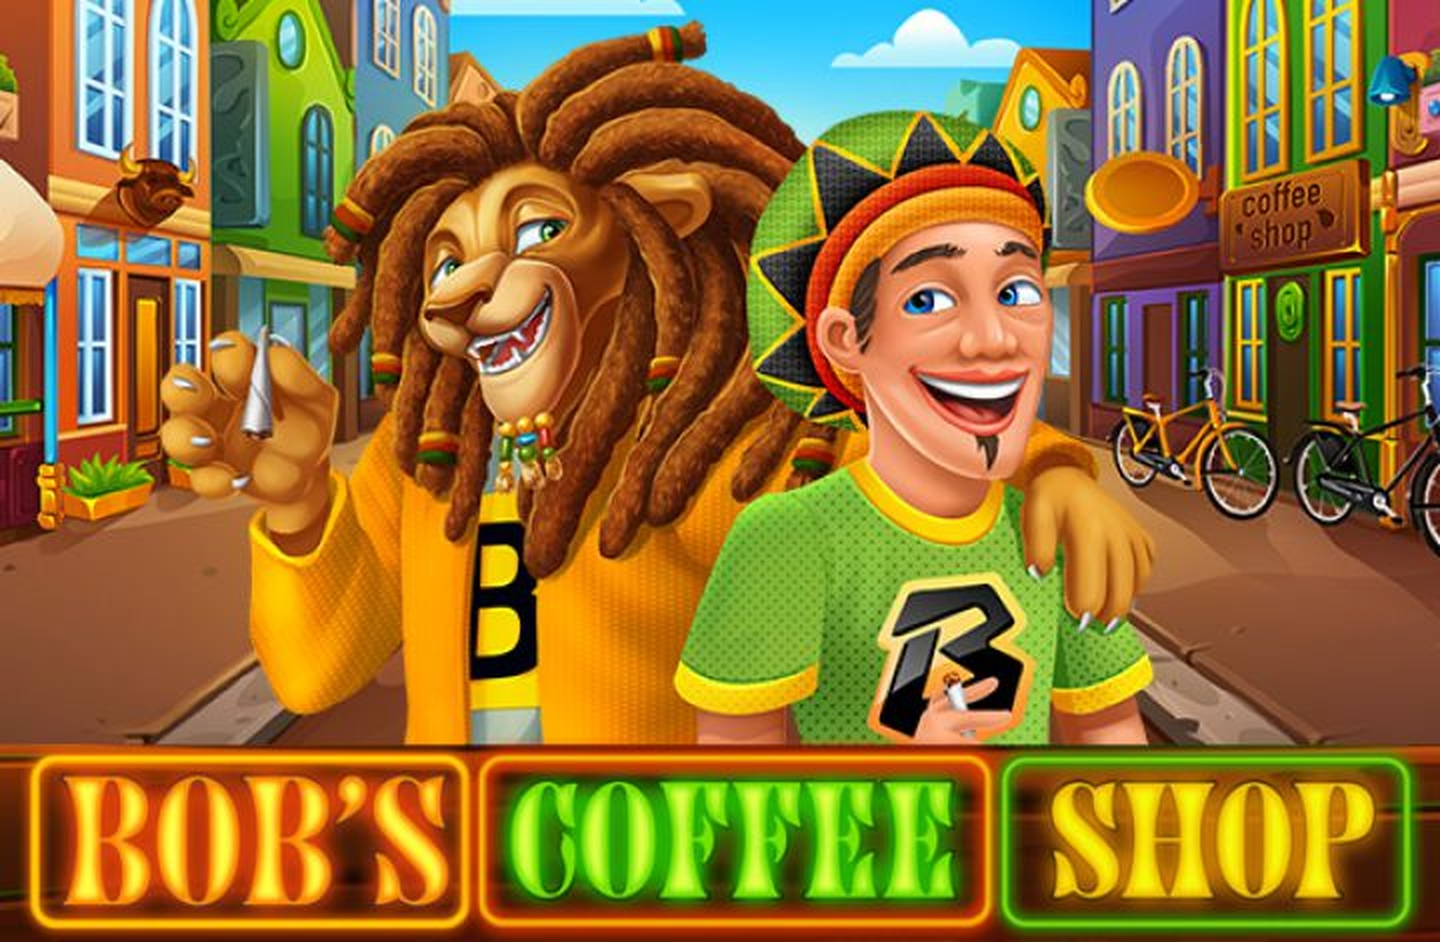 The Bob's Coffee Shop Online Slot Demo Game by BGAMING